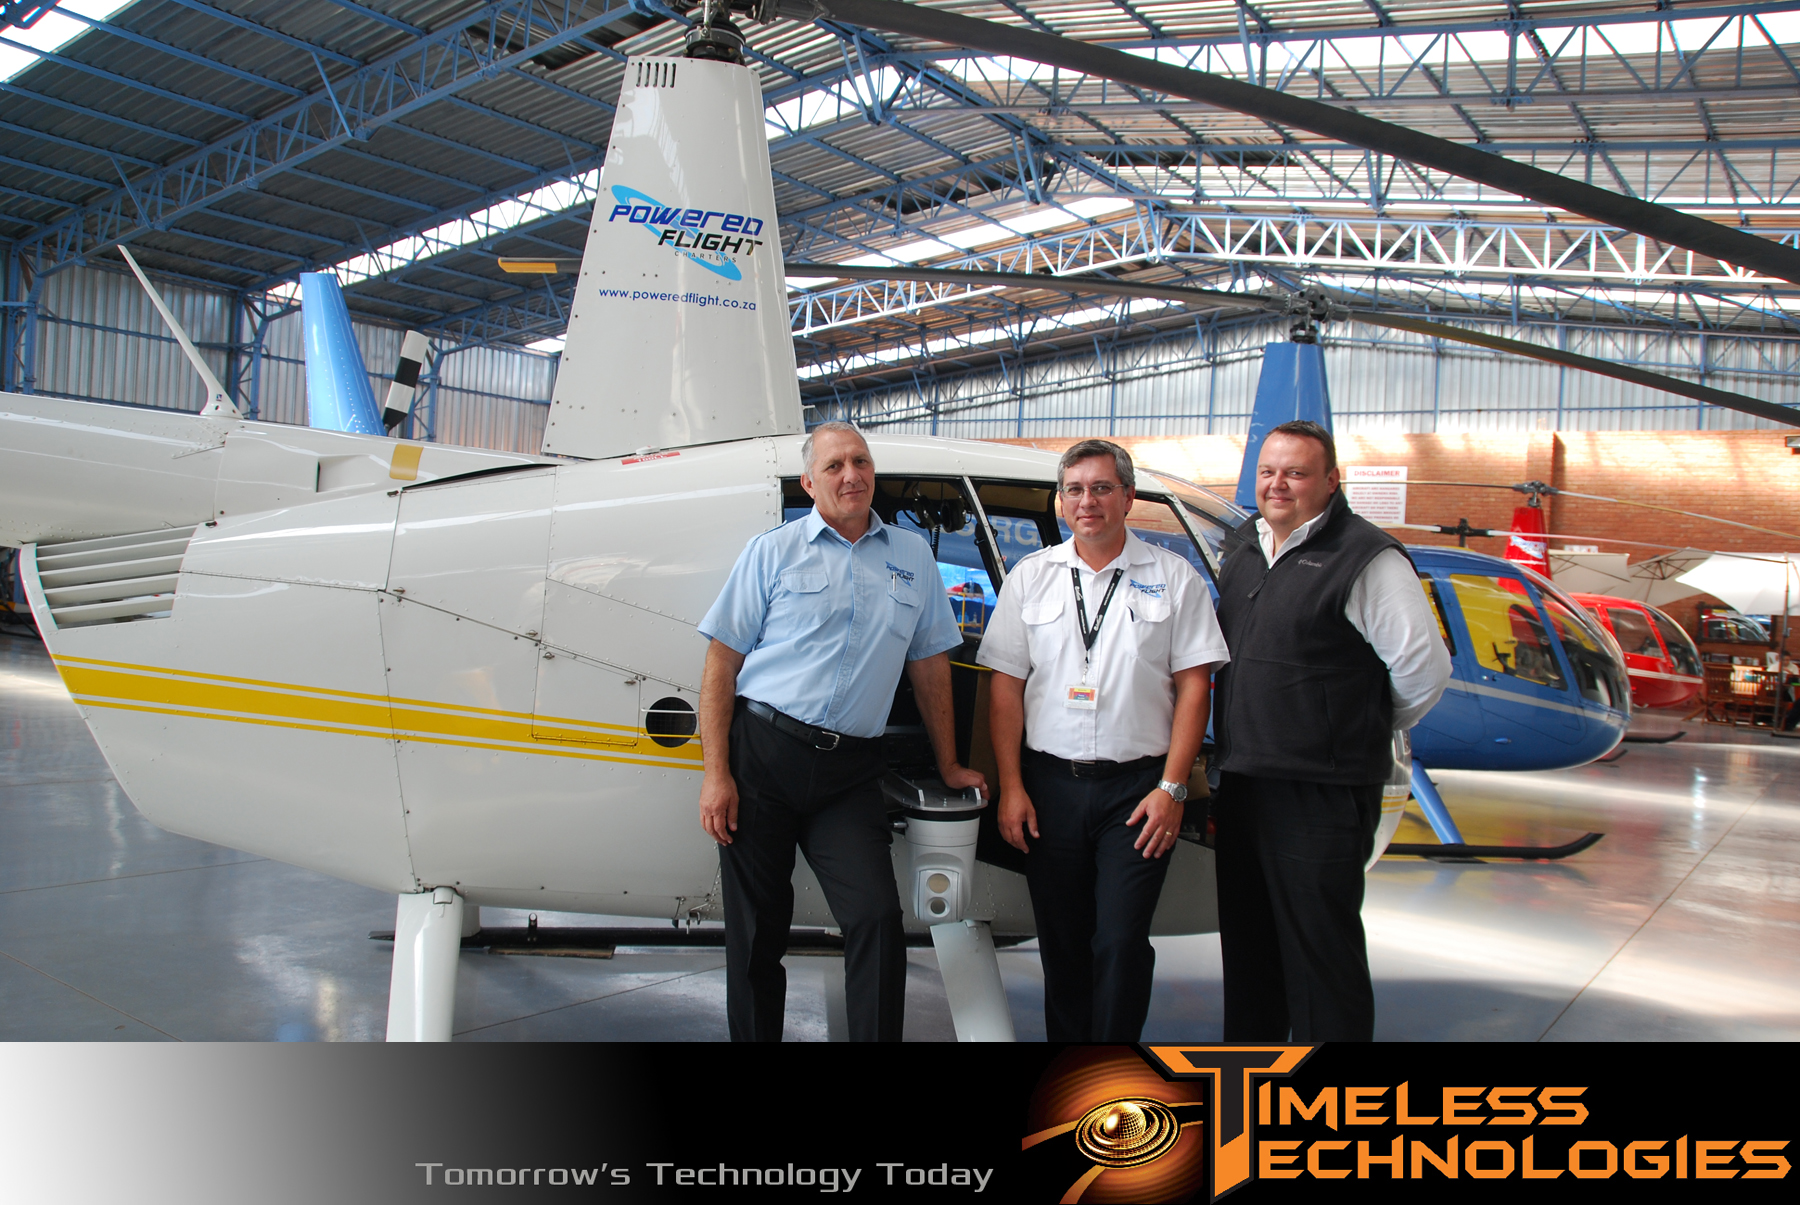 poweredflight_timetech